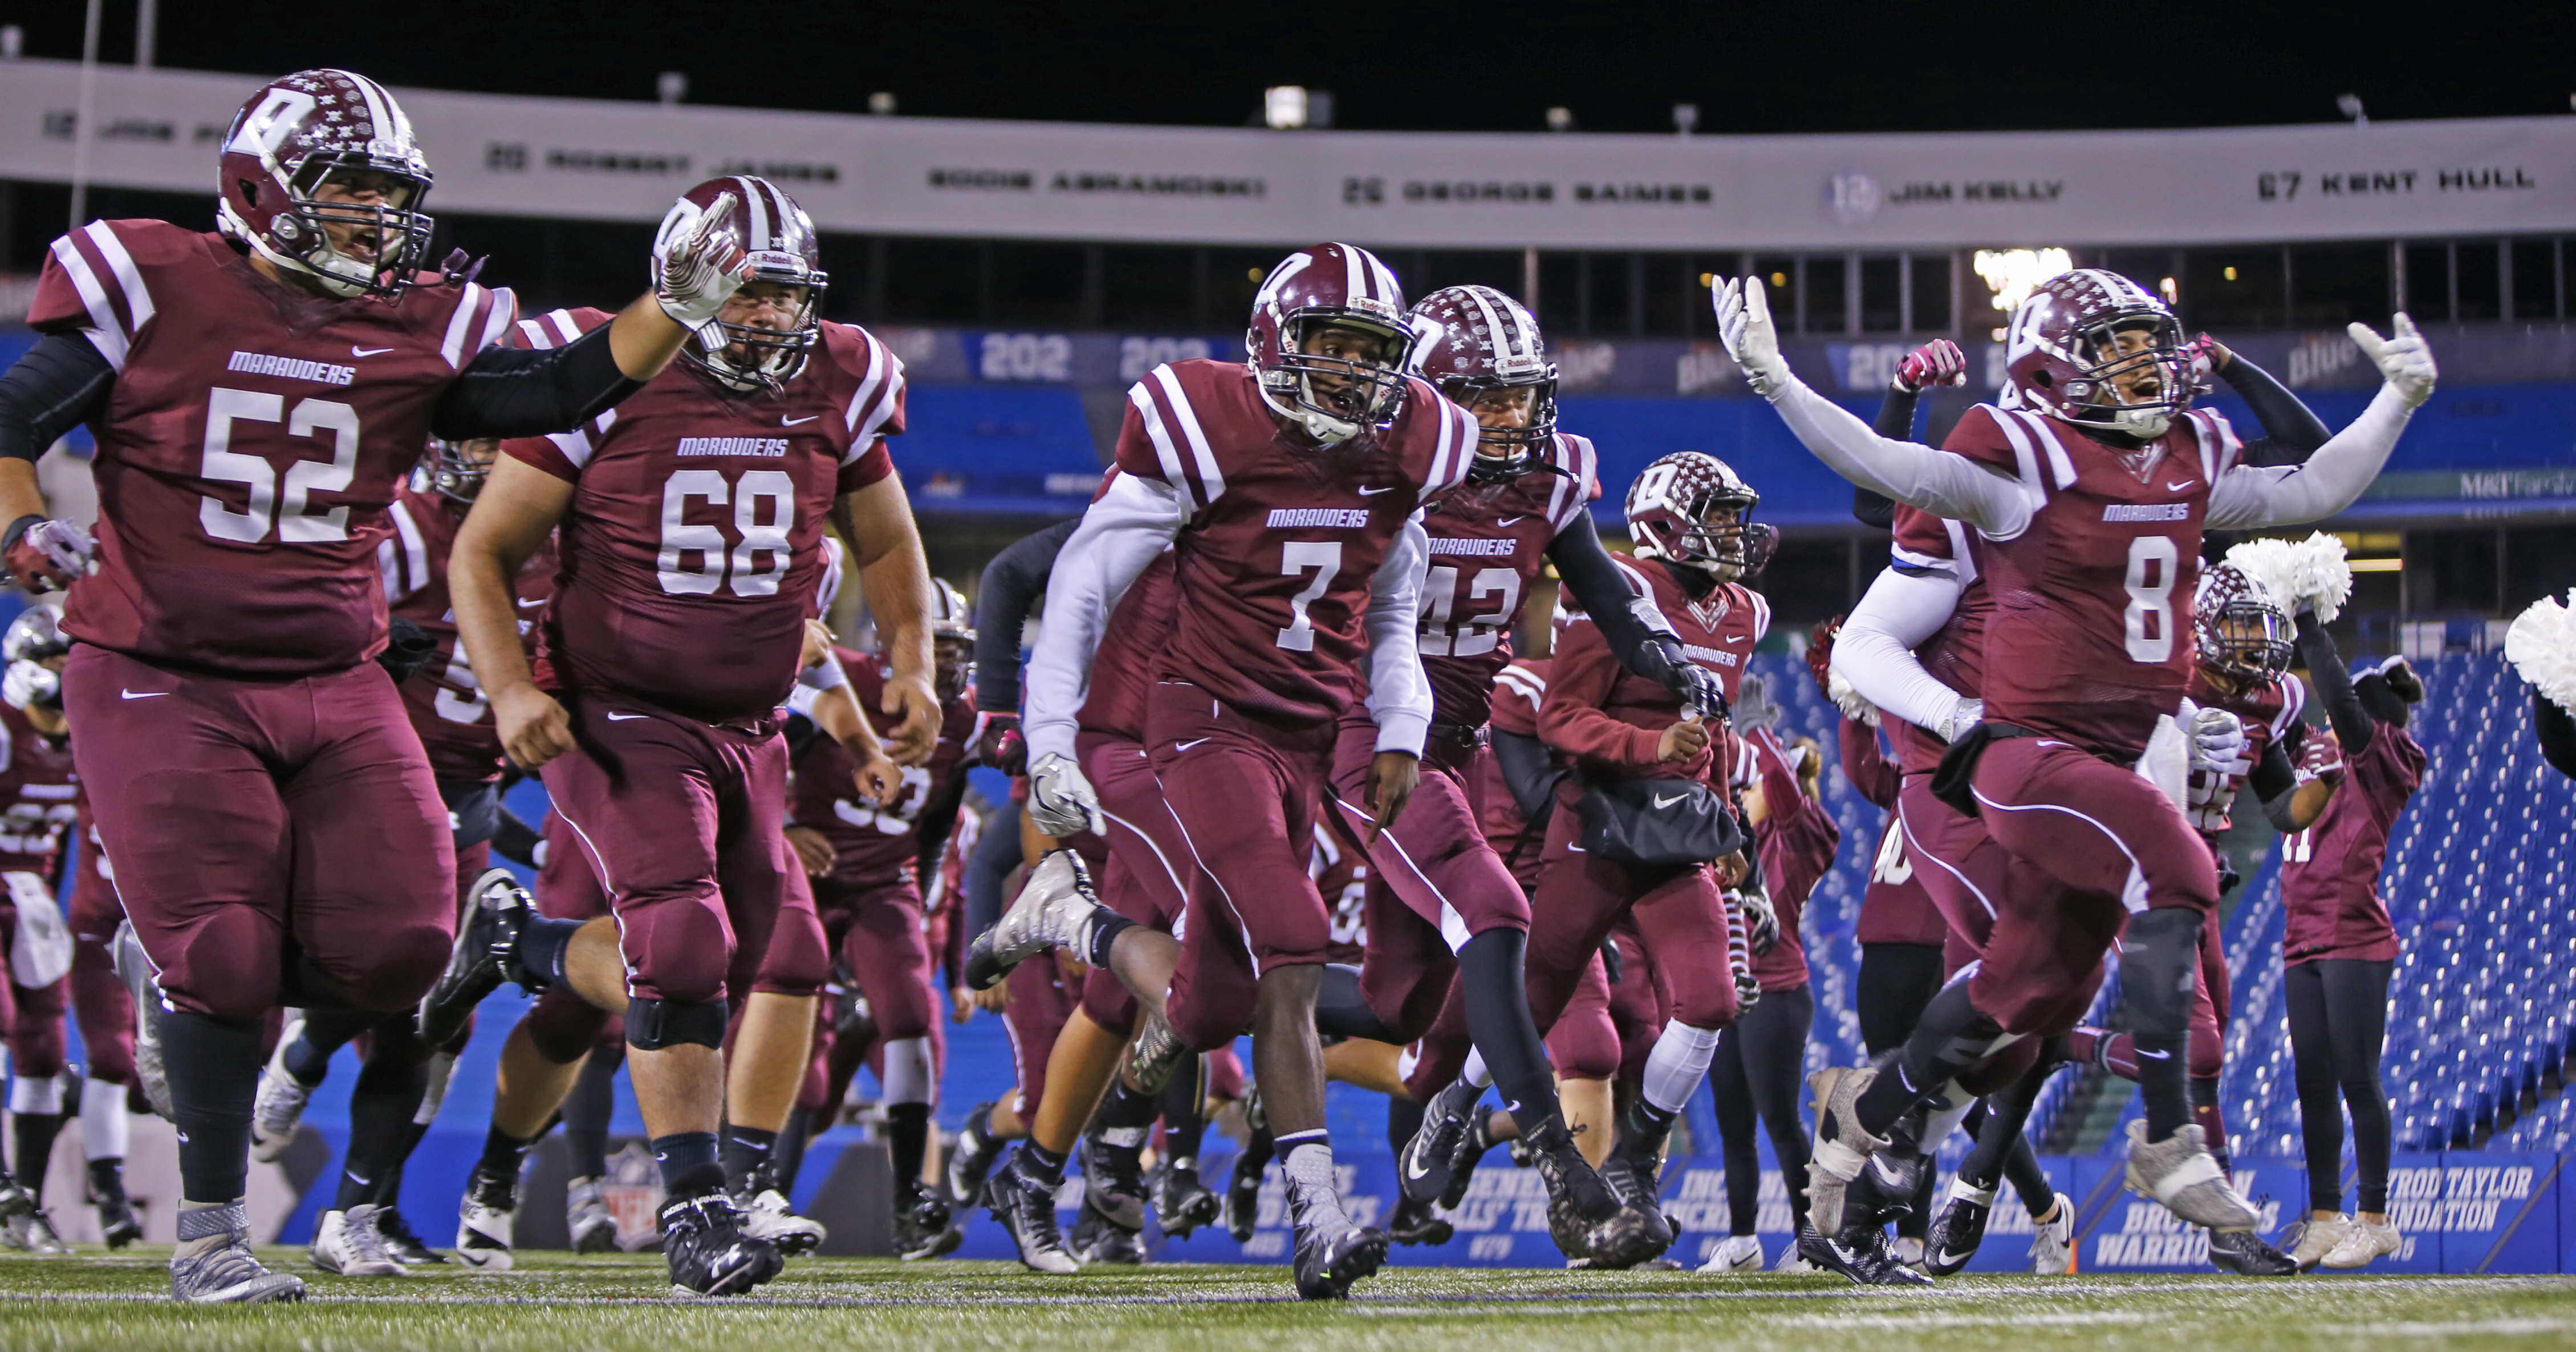 Dunkirk is introduced prior to playing Batavia in the Class B Far West Regional at New Era Field last week. (Harry Scull Jr./Buffalo News)